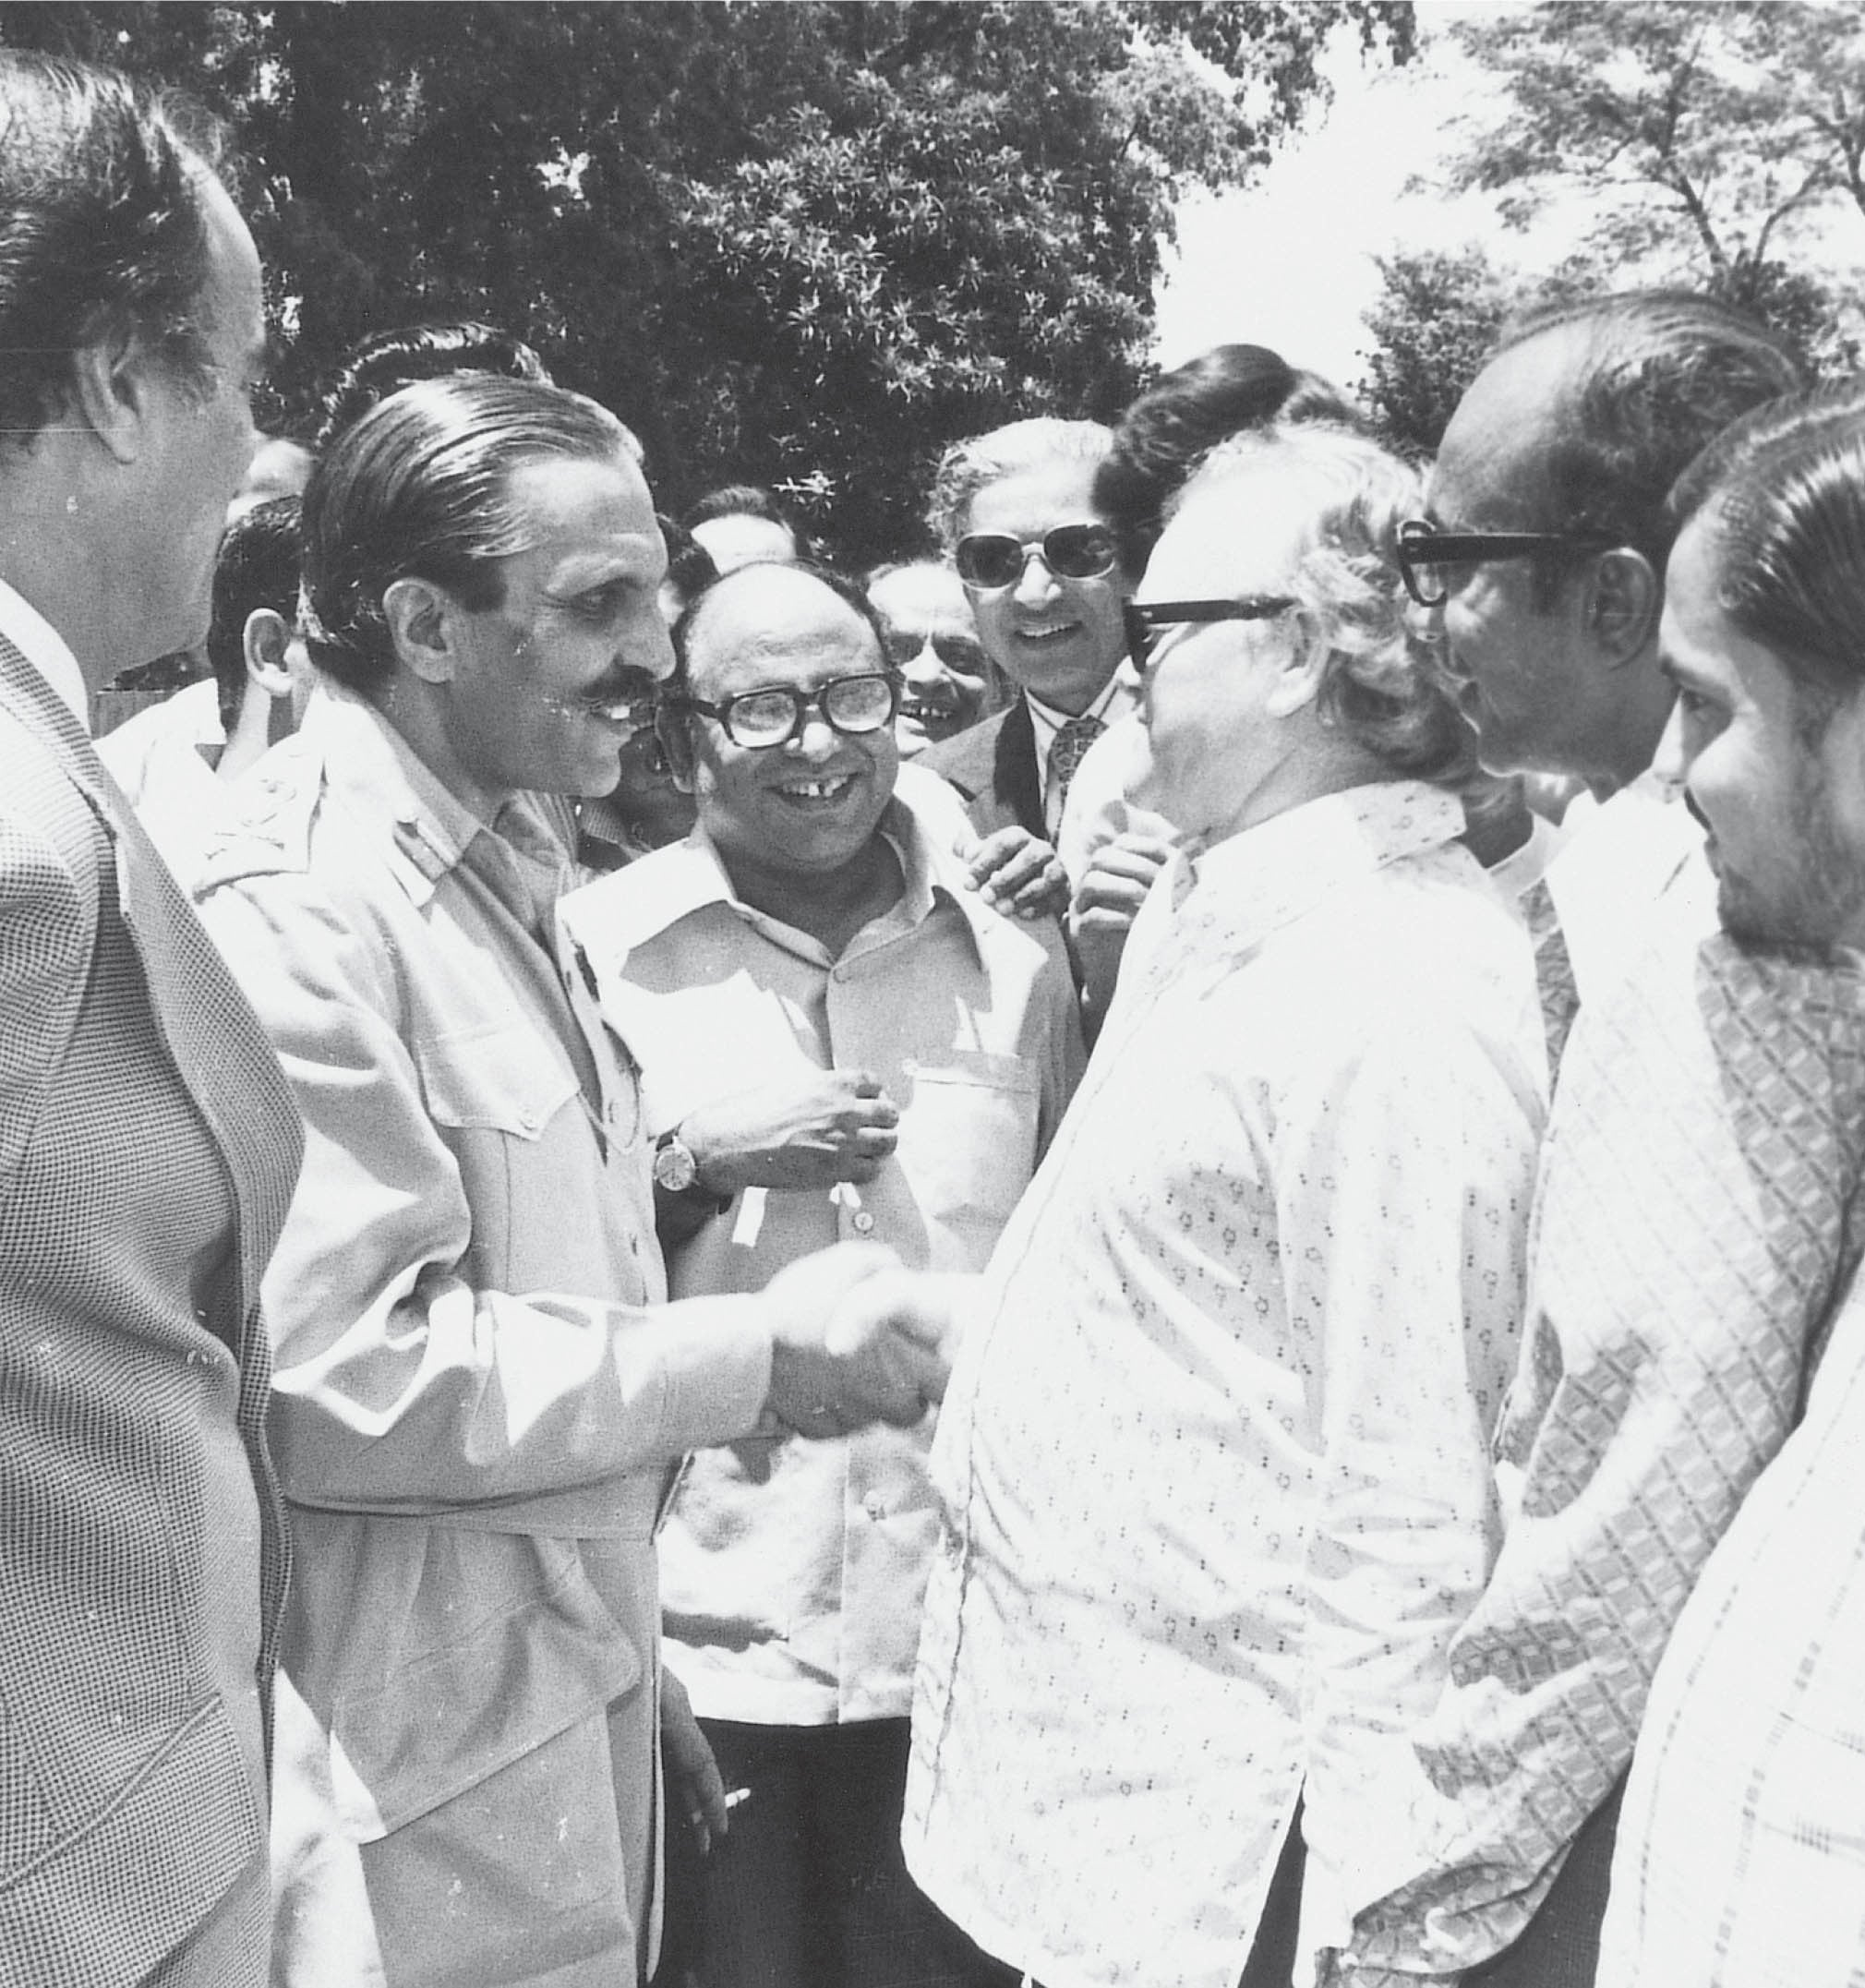 General Zia-ul-Haq in a mood of characteristic bonhomie is seen in conversation with senior journalists in Islamabad on July 9, 1977. From left to right: Mir Khalil-ur-Rehman (Jang), General Zia-ul-Haq, Sharif Farooq (Jihad), M.A. Zuberi (Business Recorder), Altaf Hassan Qureshi (Pakistan Digest) and Mumtaz Tahir (Aftab Multan). — Hasan Bozai/Dawn/White Star.